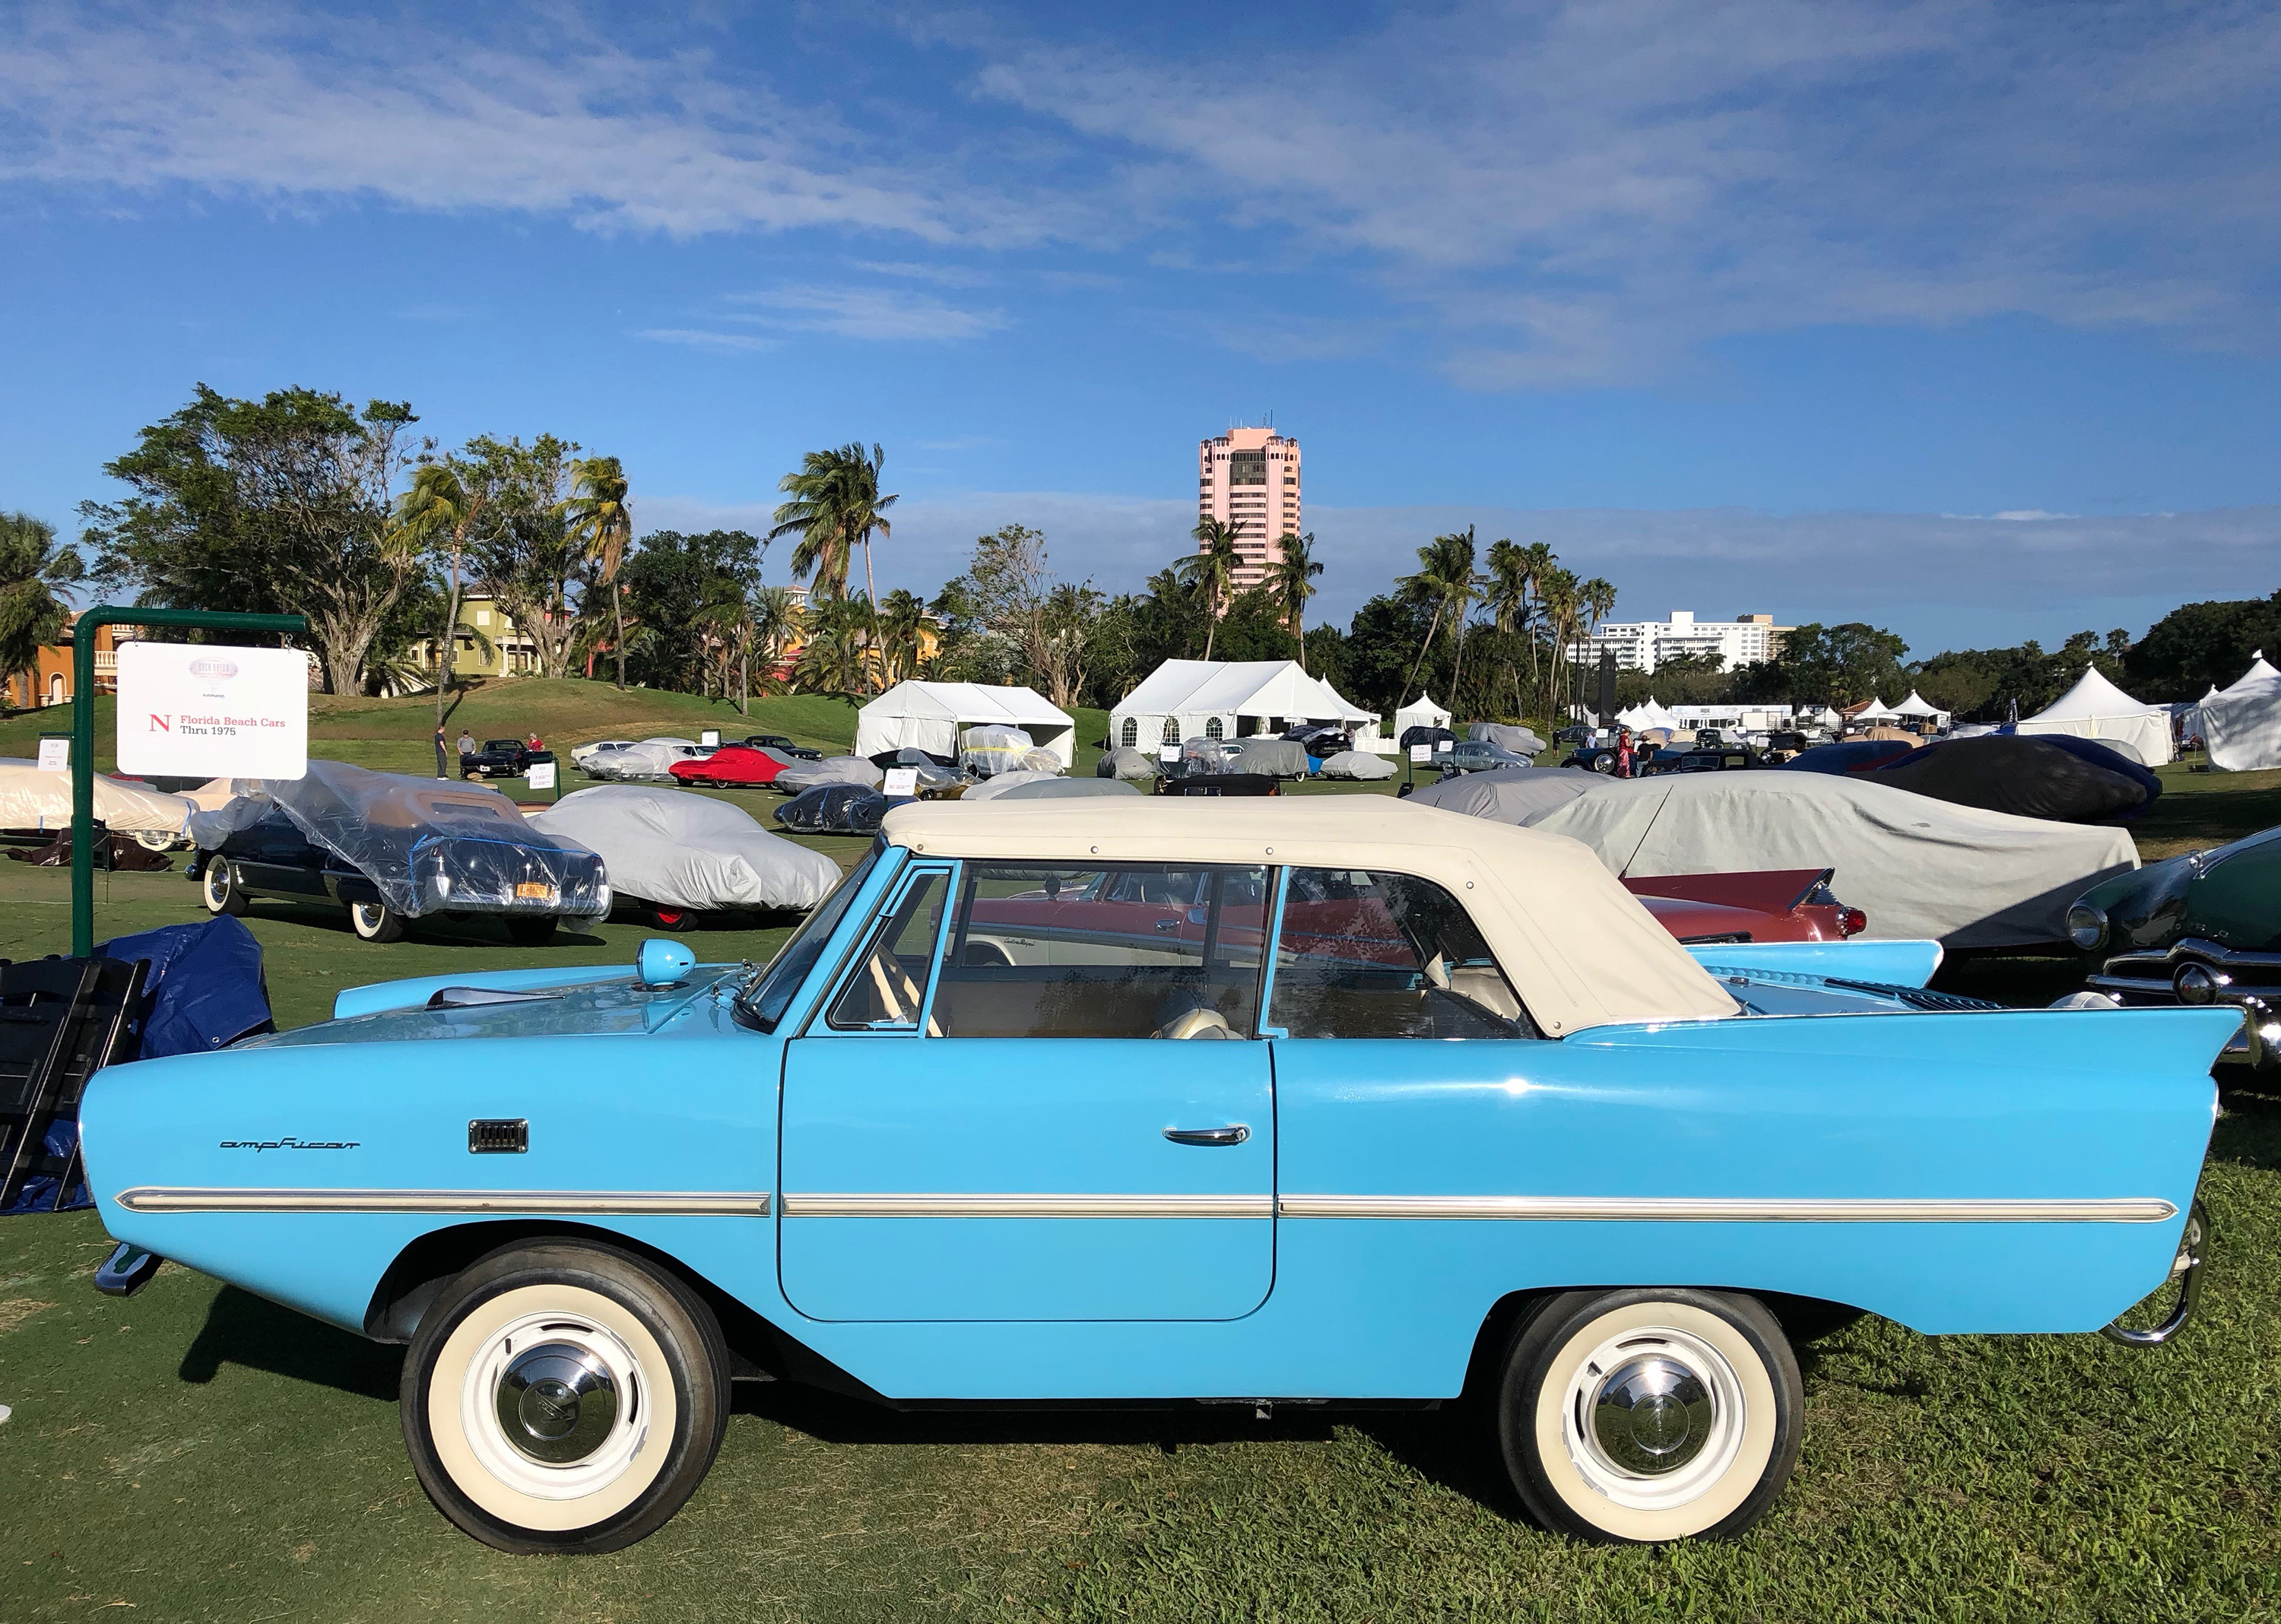 Boca Raton Concours For A Cause And With Great Cars ClassicCarscom - Boca raton car show